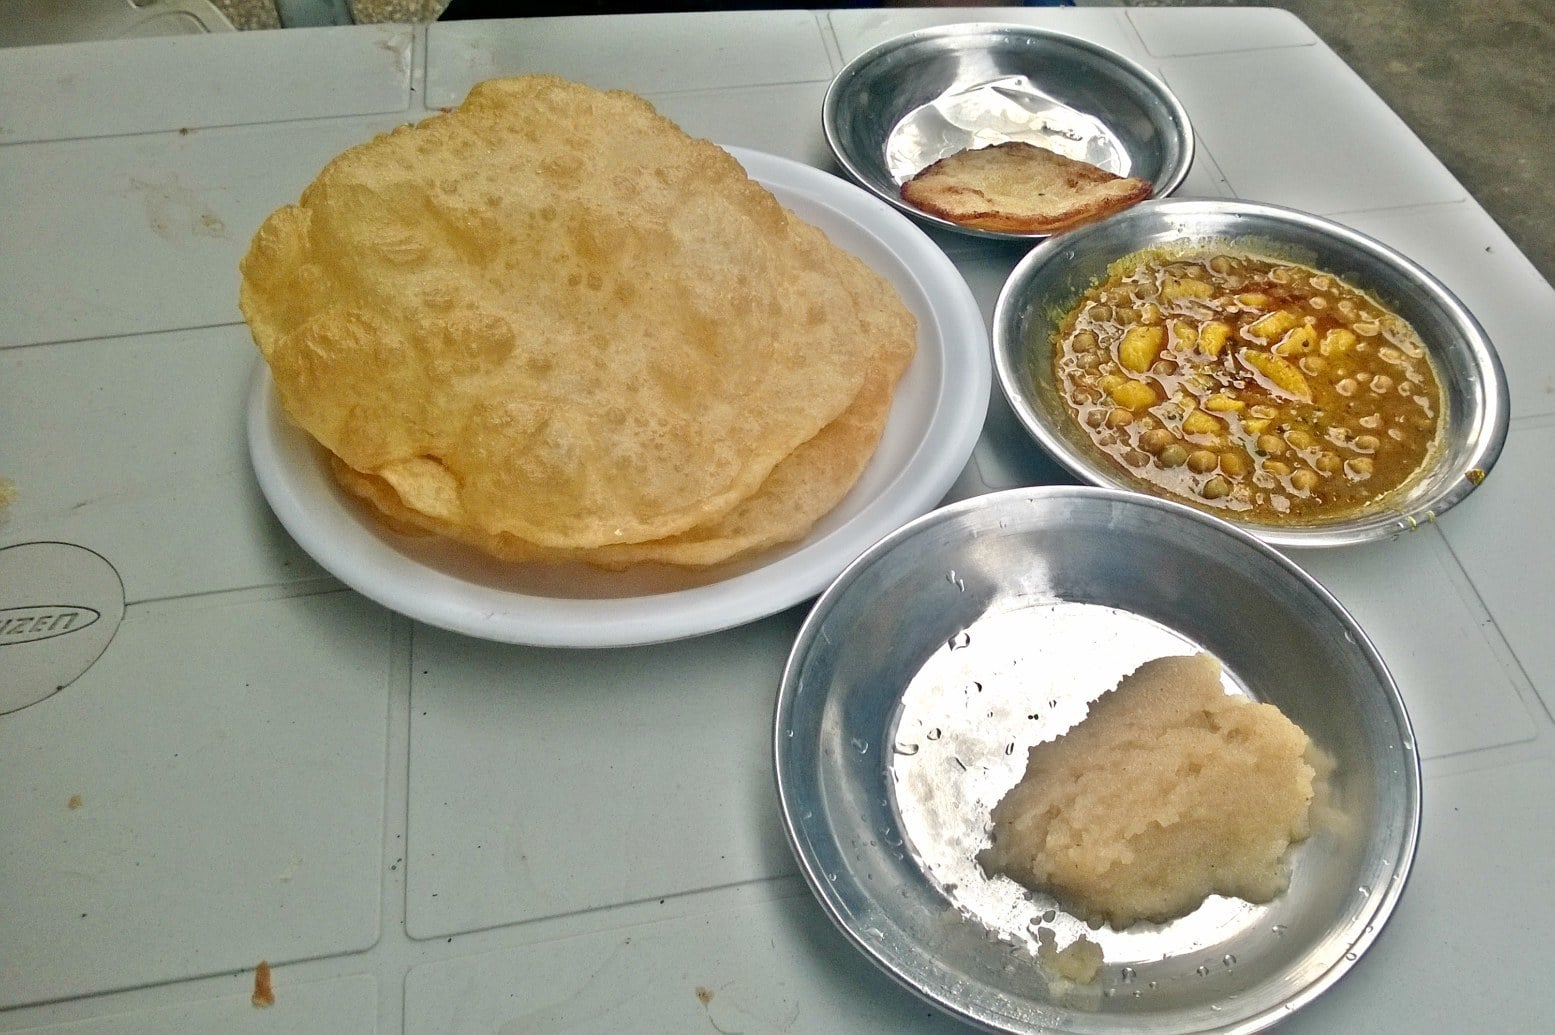 The halwa puri at Butt Sweets was a good meal on the whole